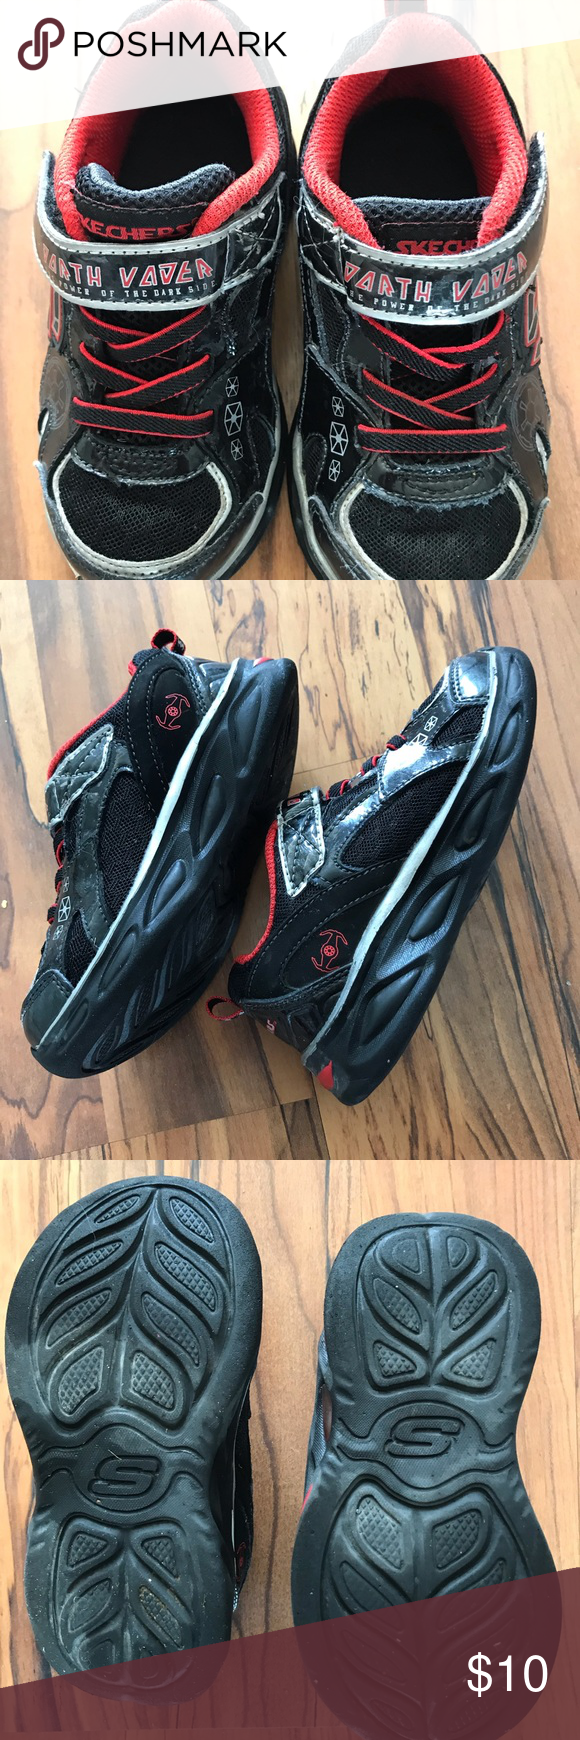 Sketchers Darth Vader tennis shoes size 9 These have been a favorite Darth Vad  Sketchers Darth Vader tennis shoes size 9 These have been a favorite Darth Vad